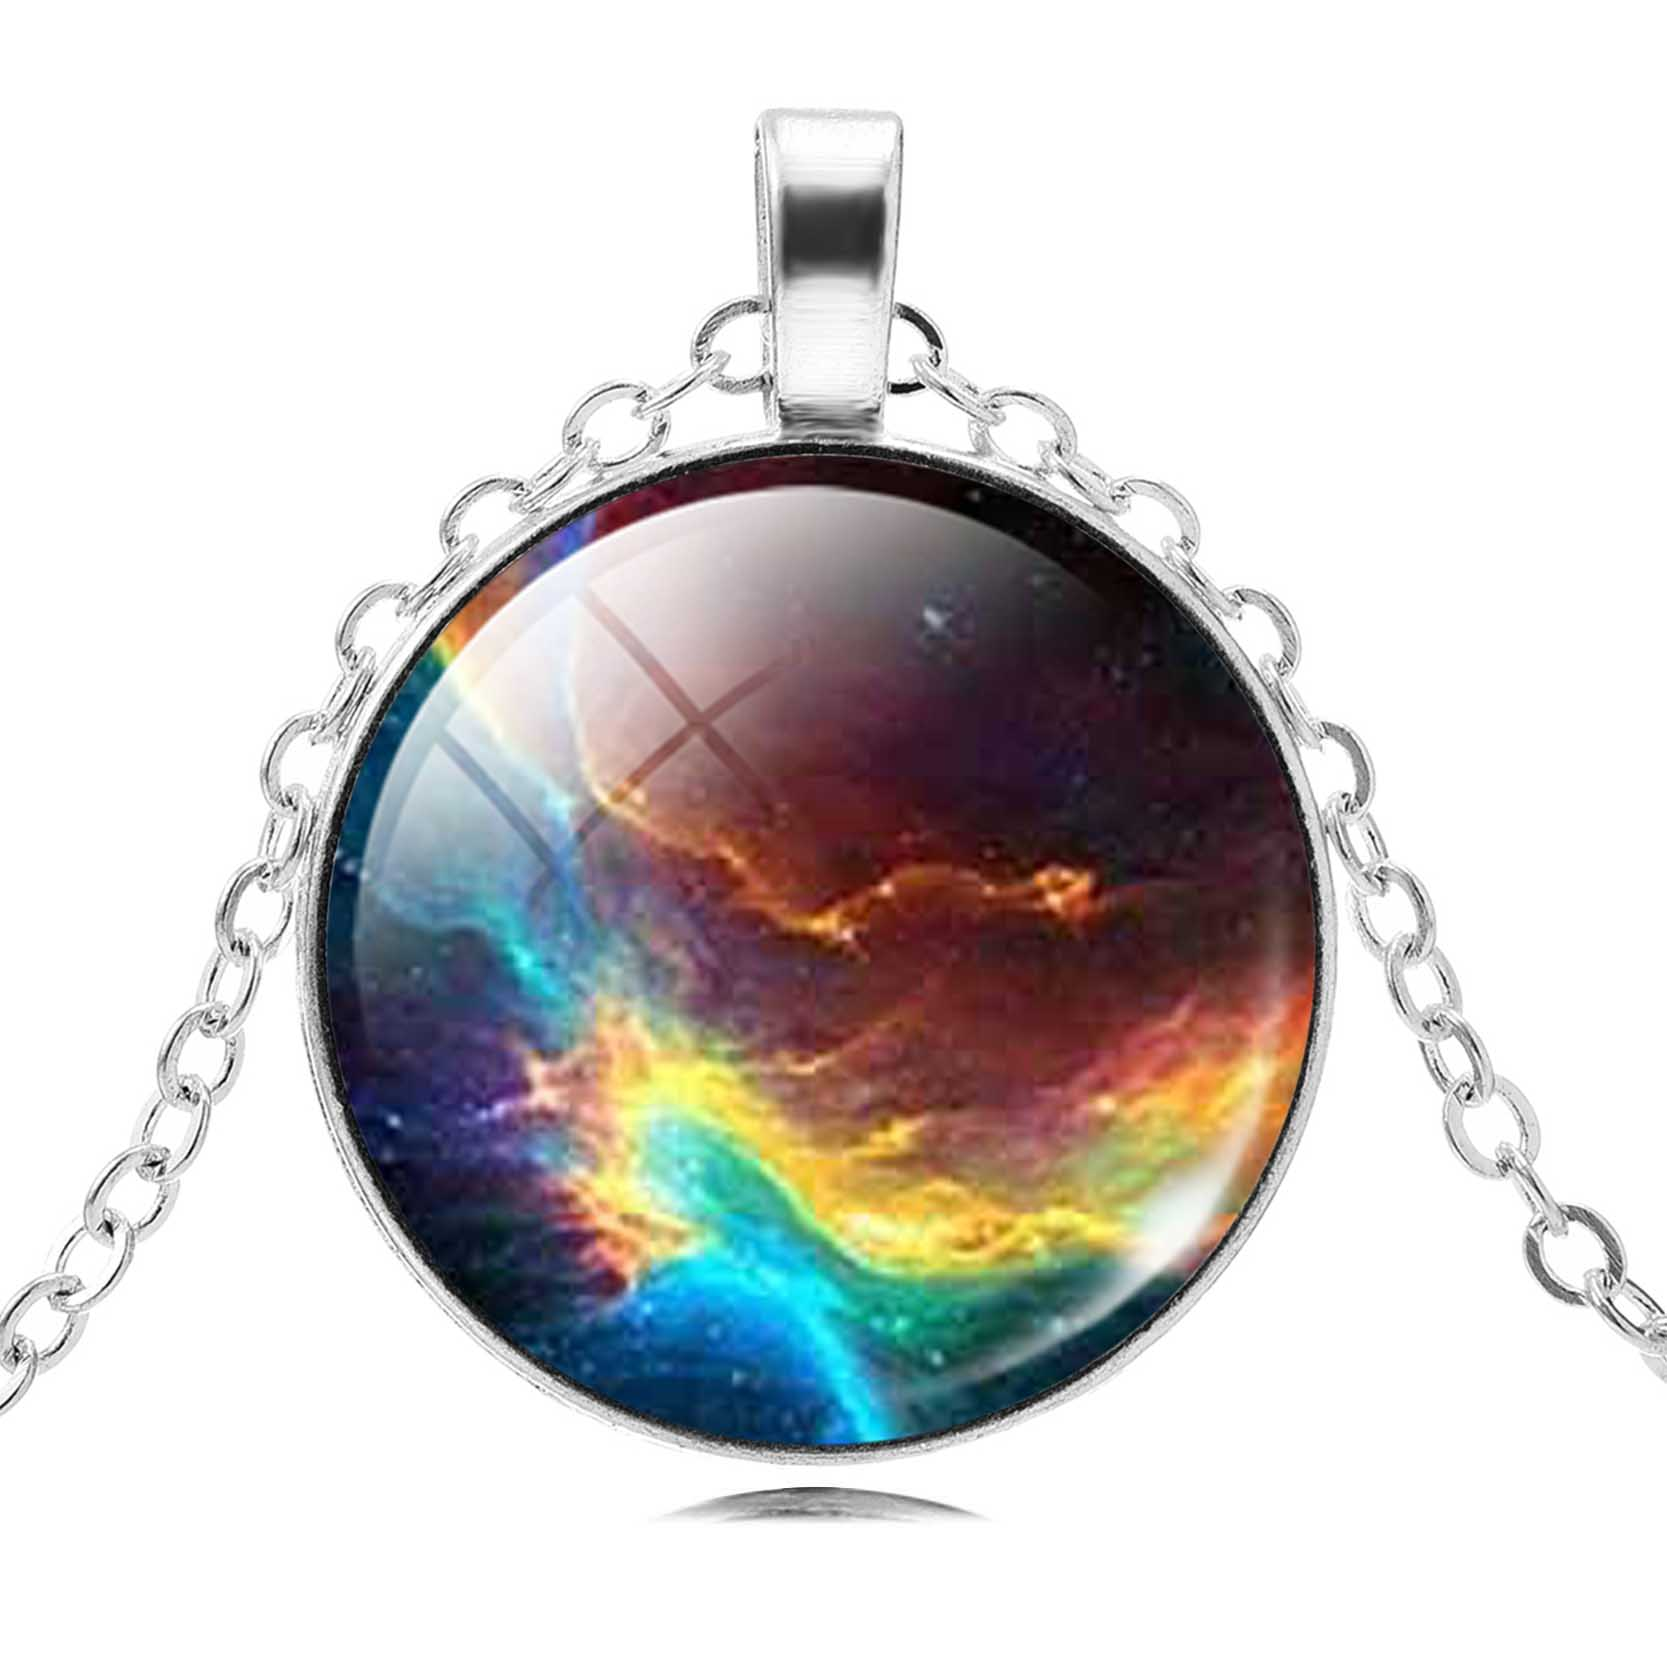 Charm Sky Galaxy Universe Pendant Necklace Choker Necklace Silver Chain Glass Cabochon Maxi Jewelry for Women Gift Anime 2017(China)